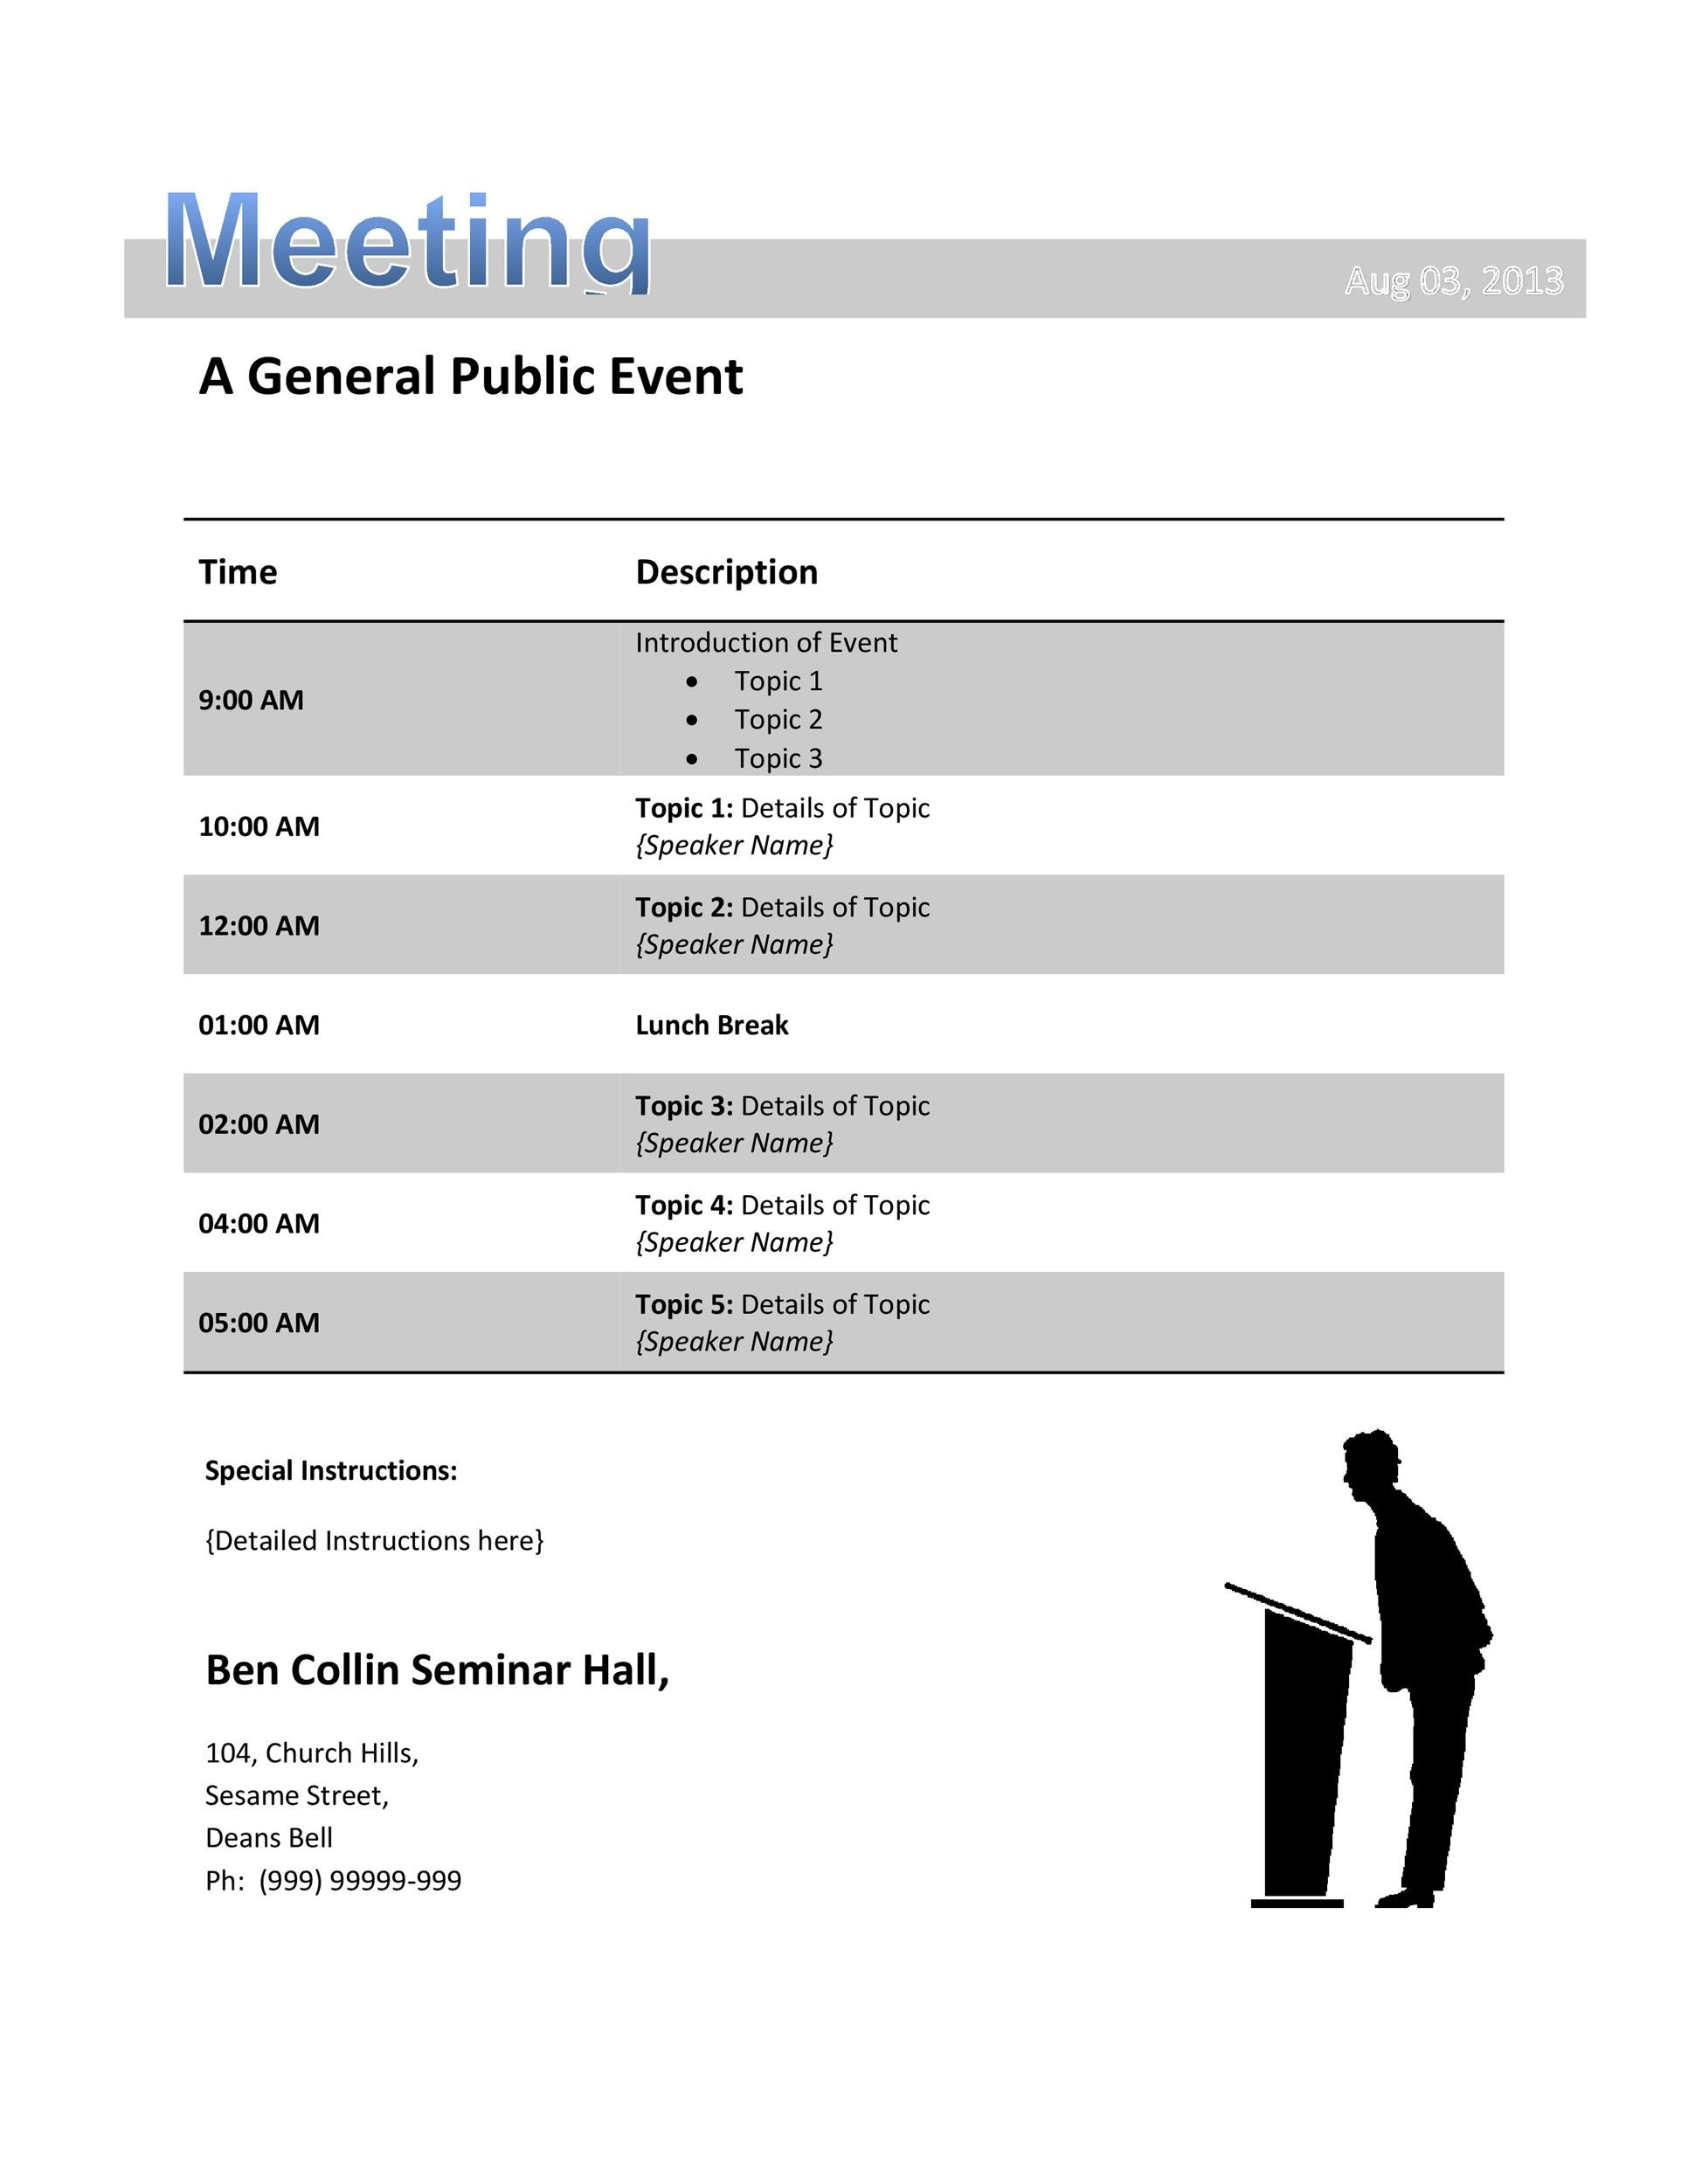 Meeting Agenda Template 36